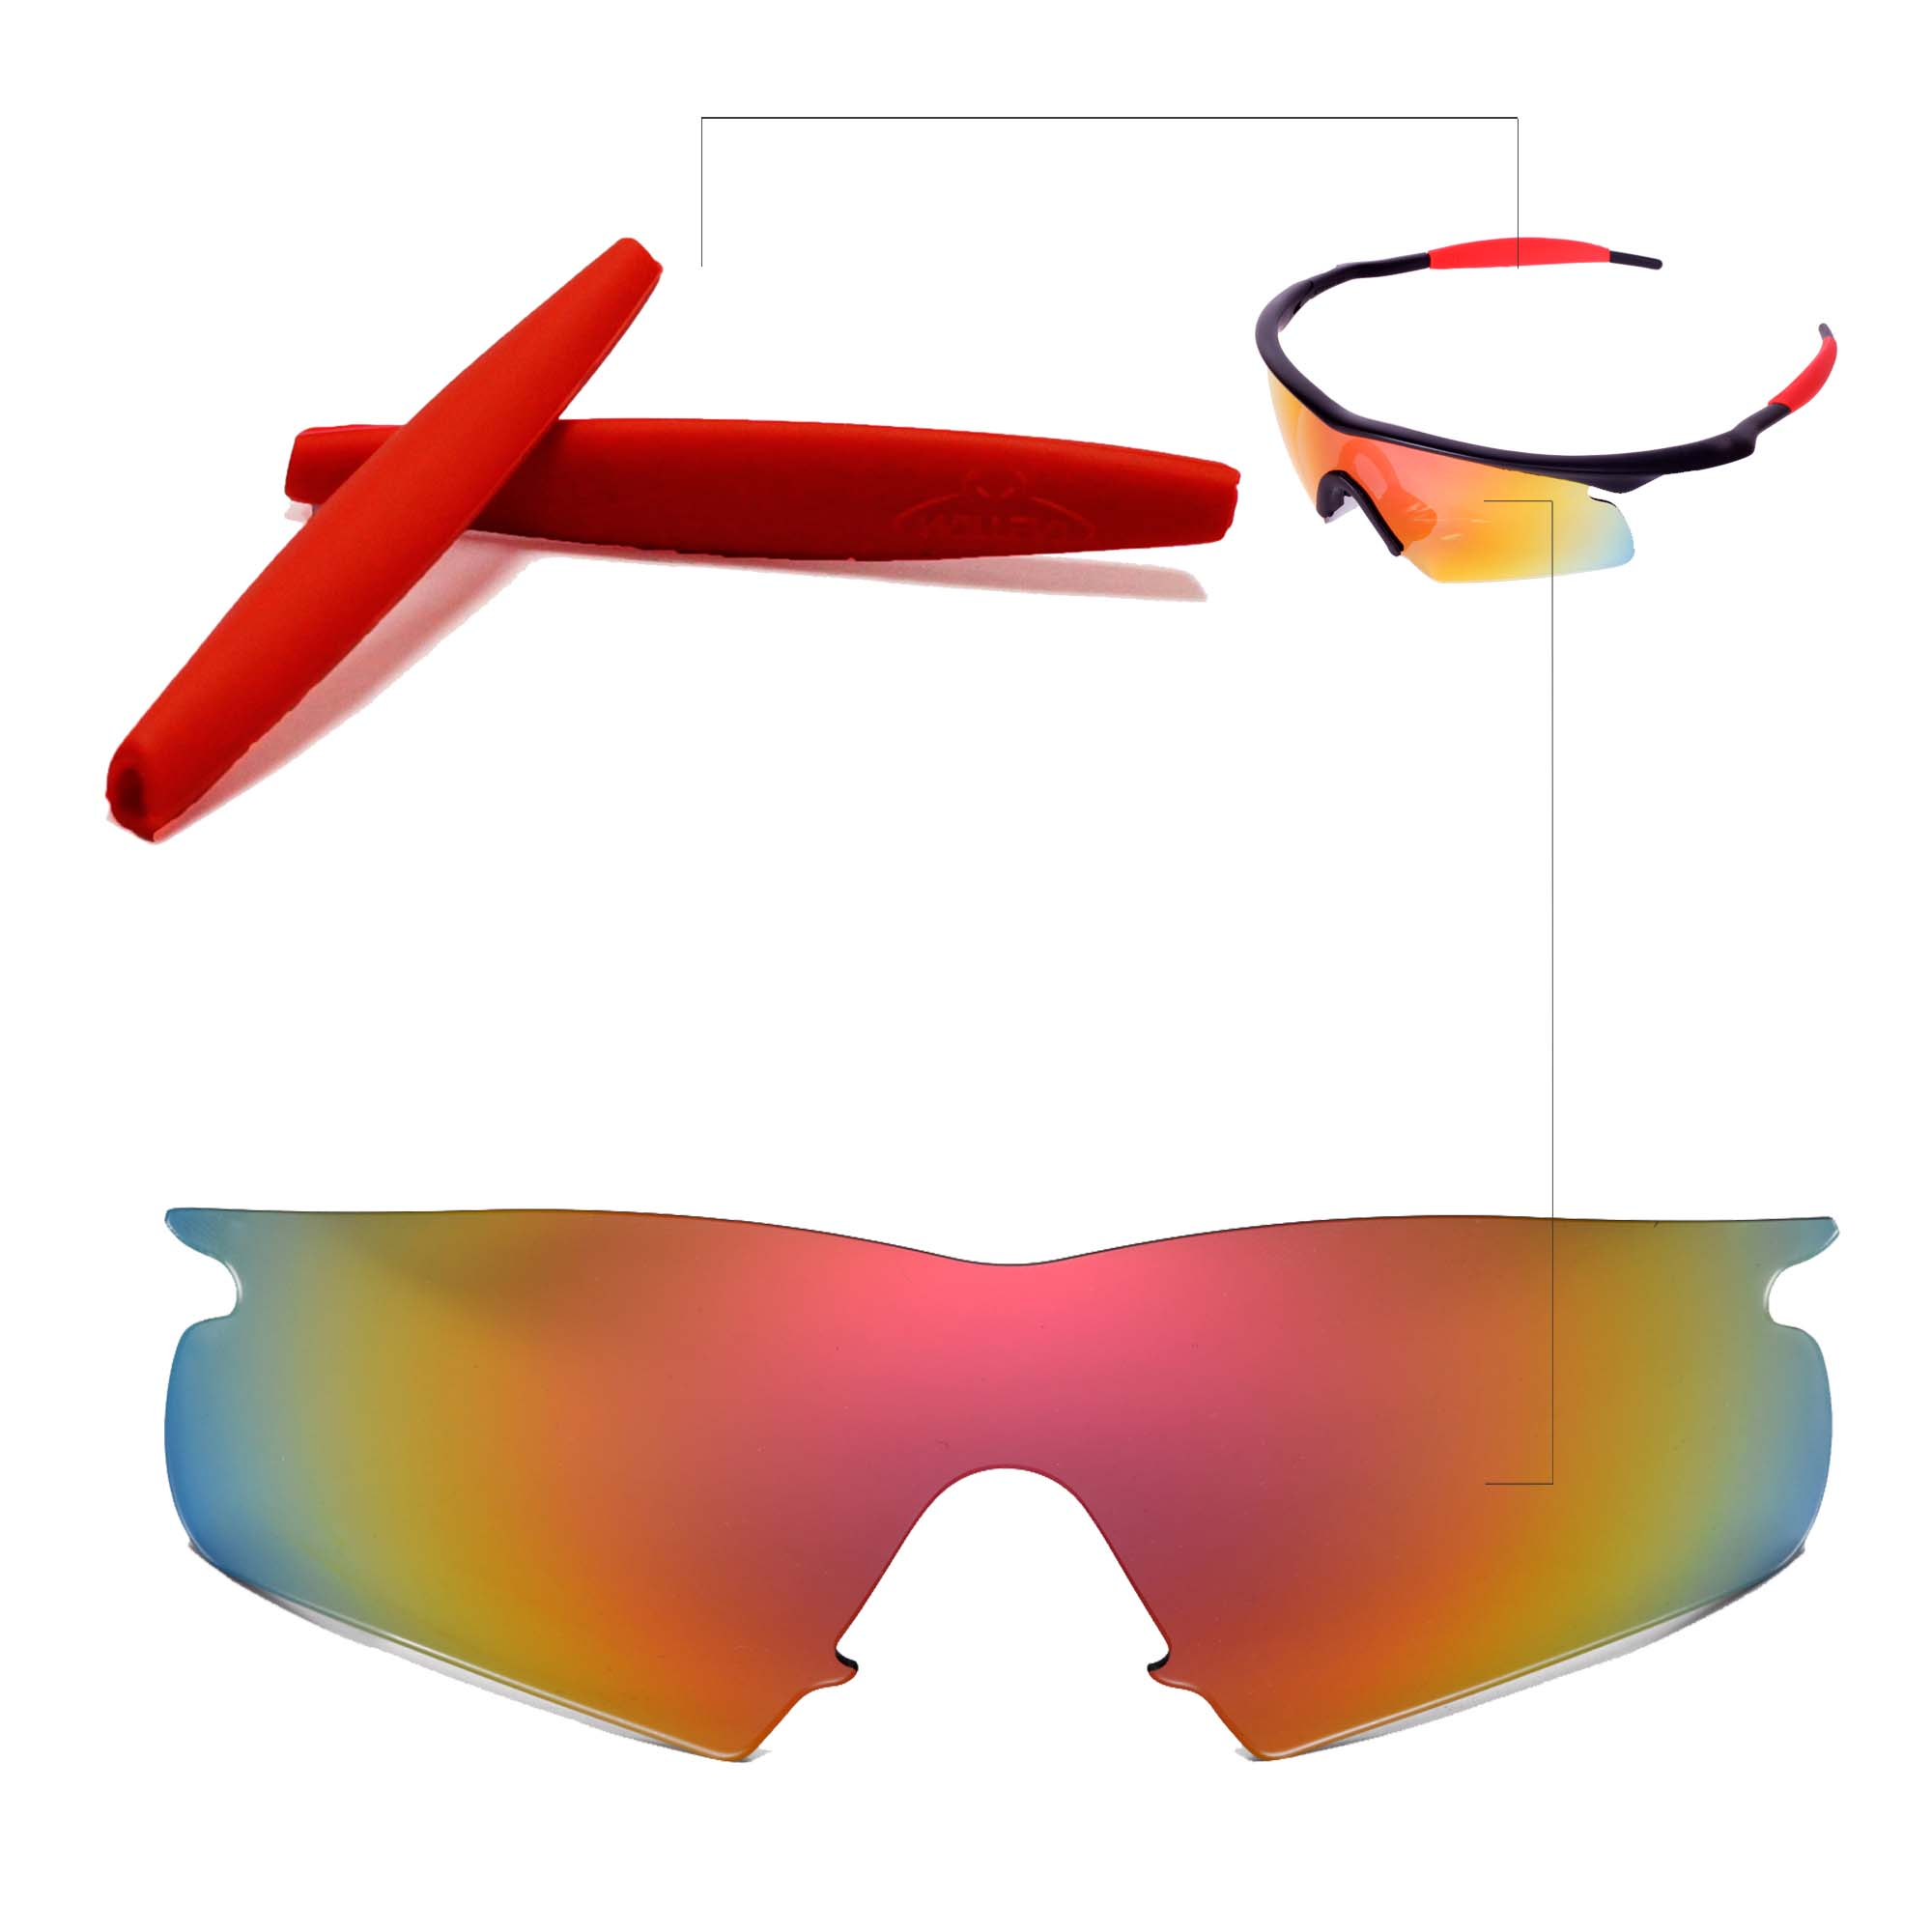 6857b4204a Details about Walleva Fire Red Replacement Lenses+Earsocks For Oakley M  Frame Hybrid